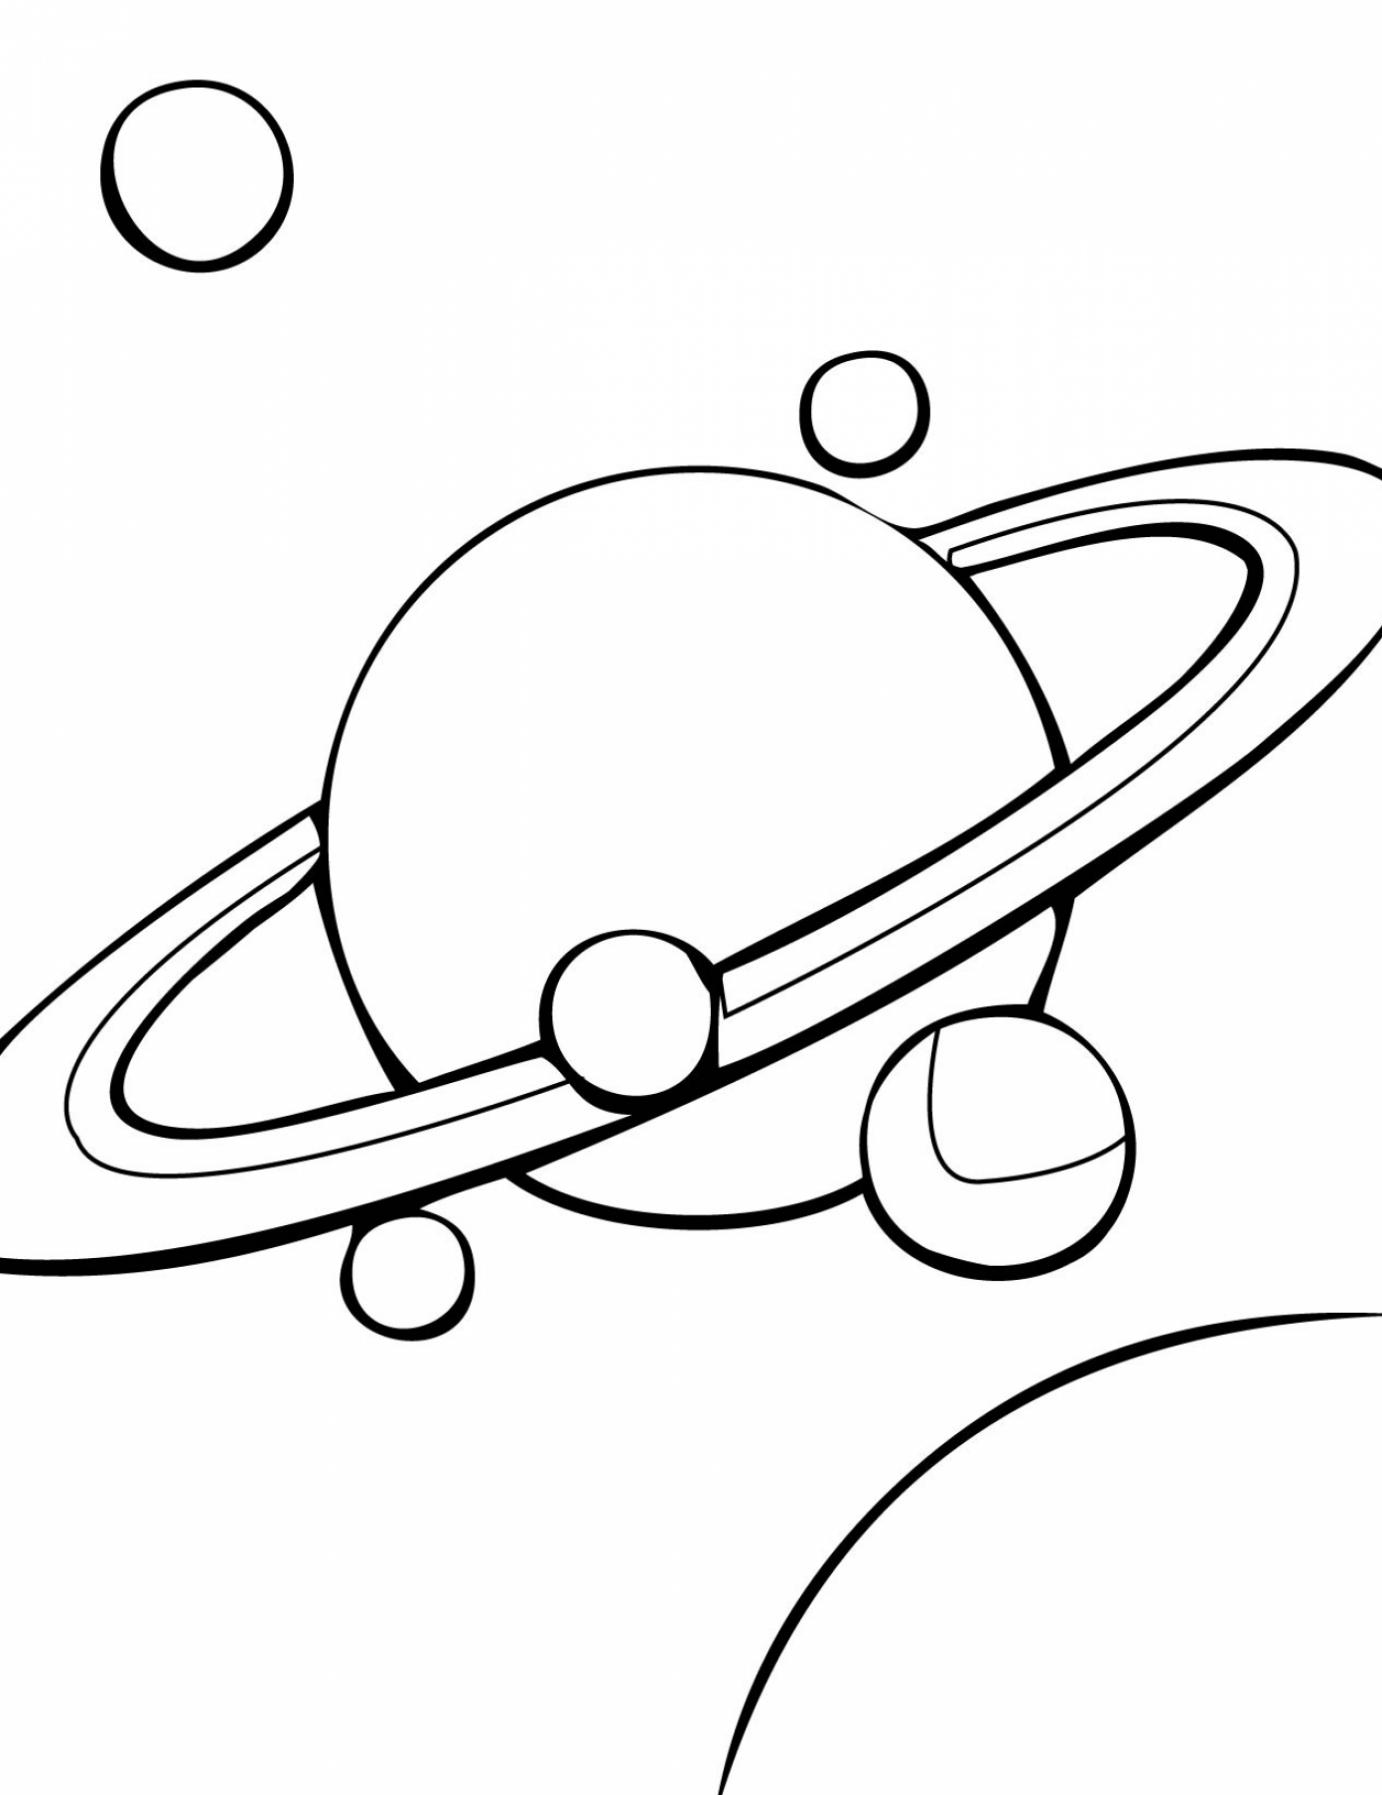 saturn colouring page saturn planet coloring page free printable coloring pages page colouring saturn